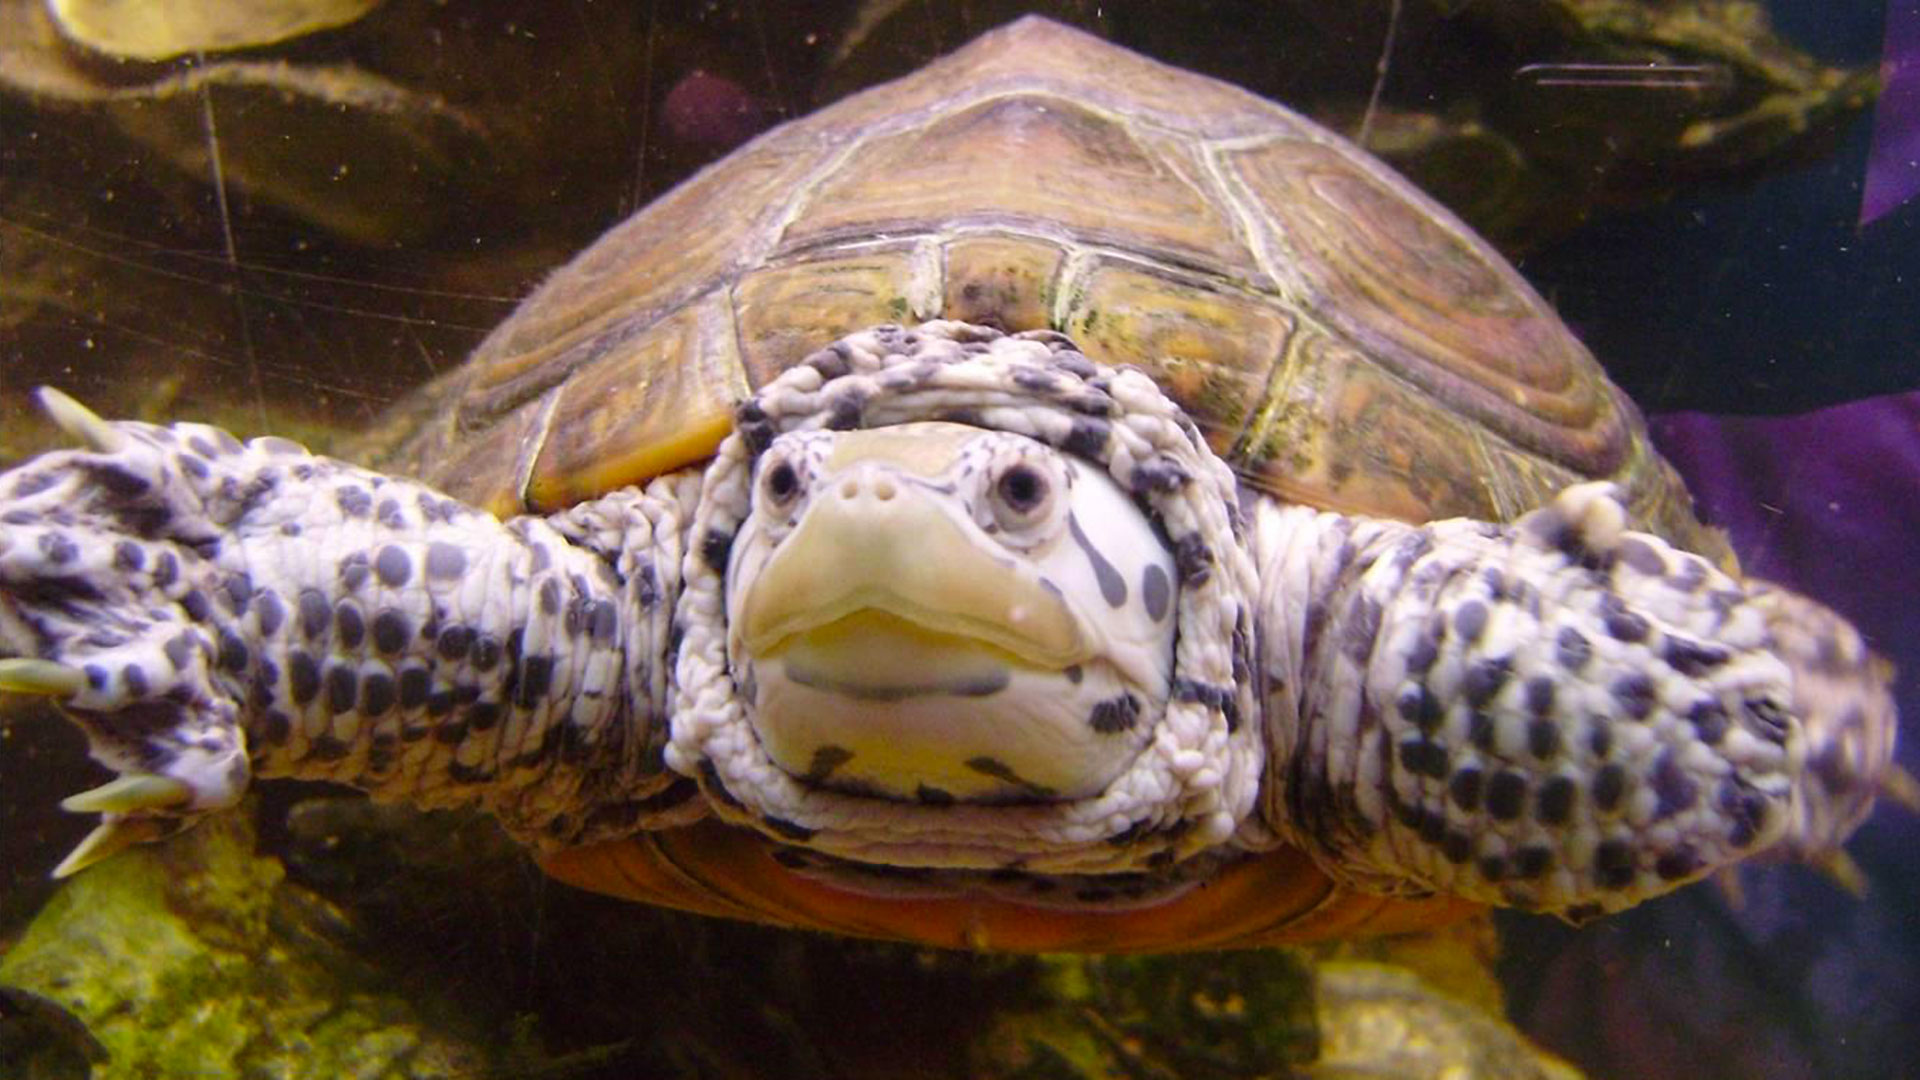 Close up photo of our resident terrapin, Izzy swimming in her tank.